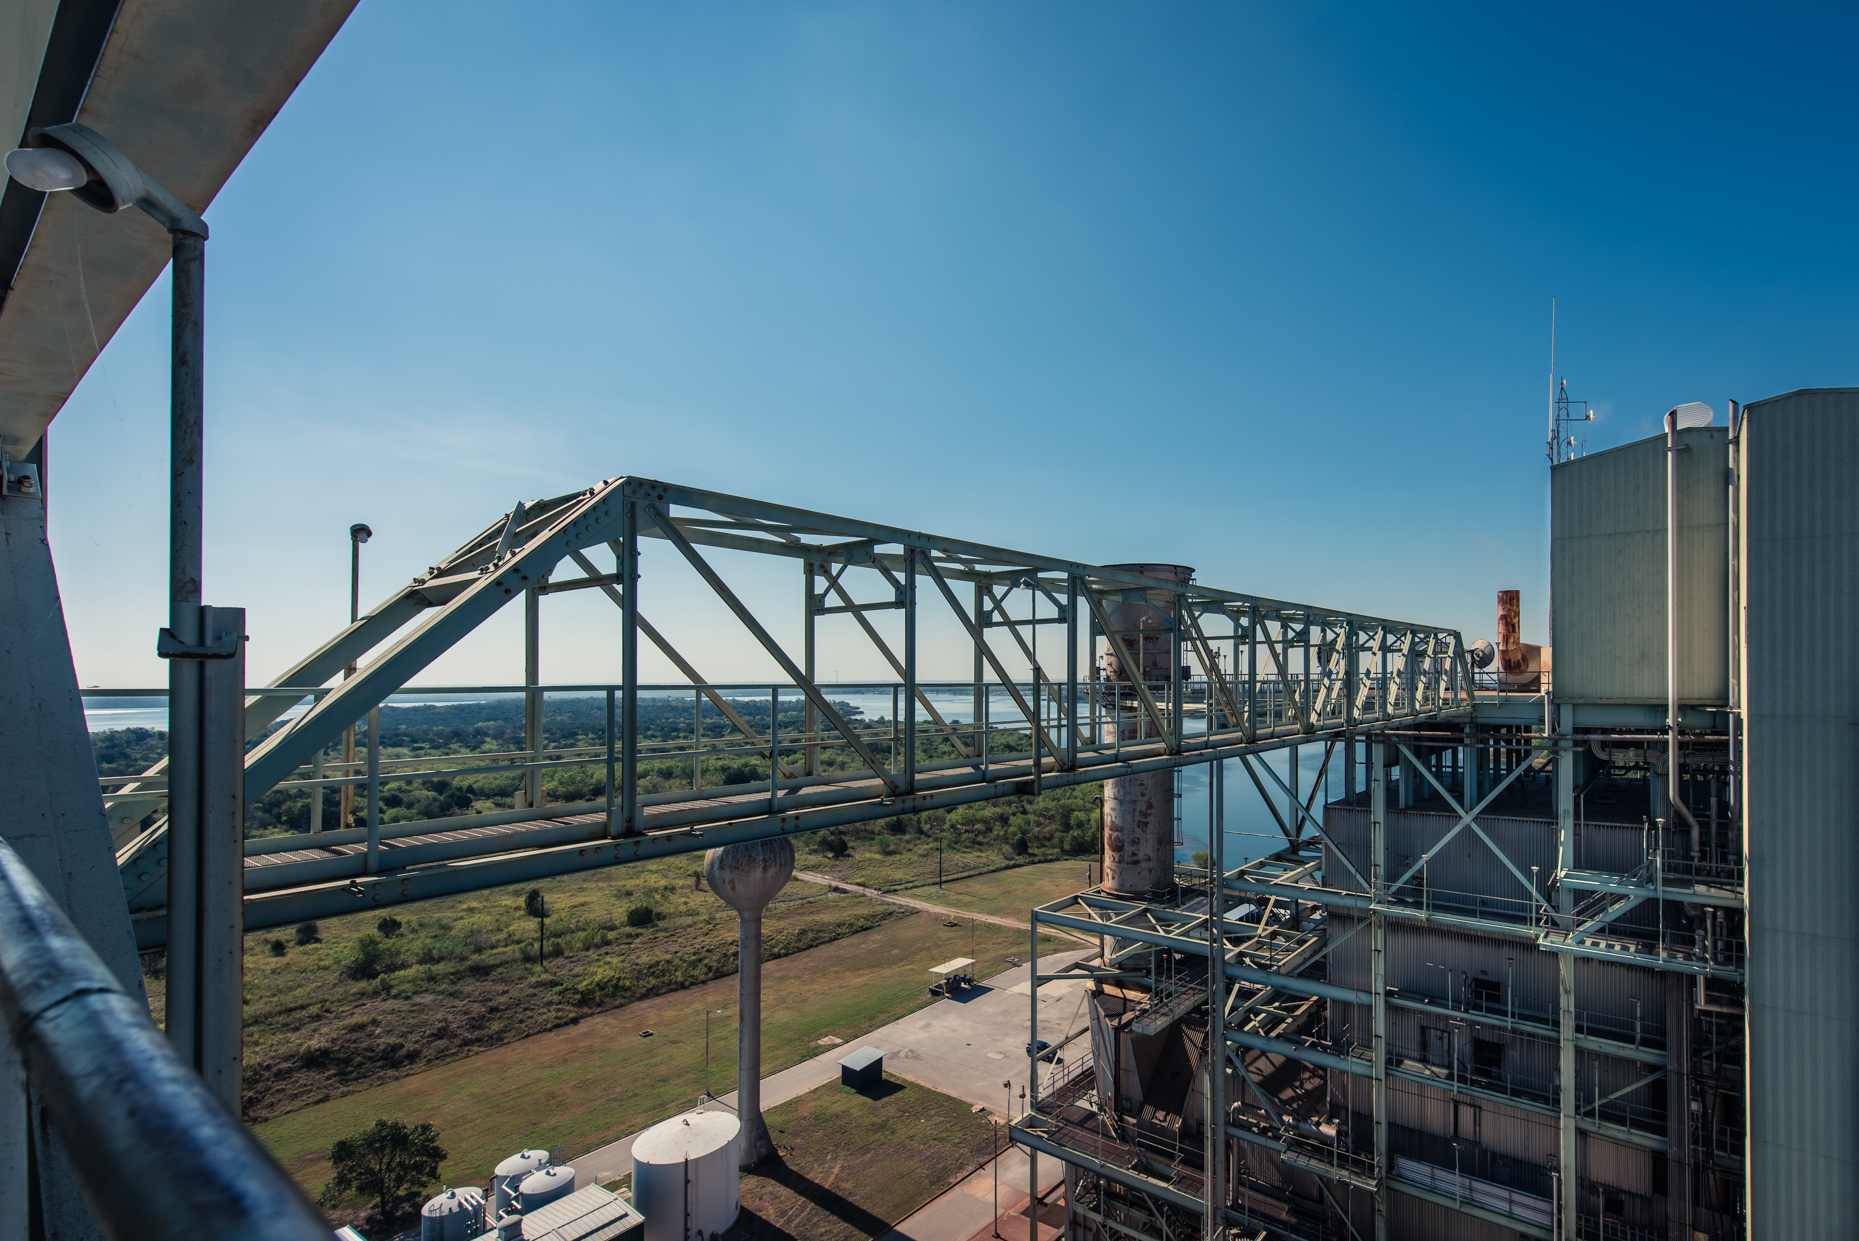 Commercial-Texas-Industrial-photographers-Austin-Energy-power-plant-bridge-exterior-steel